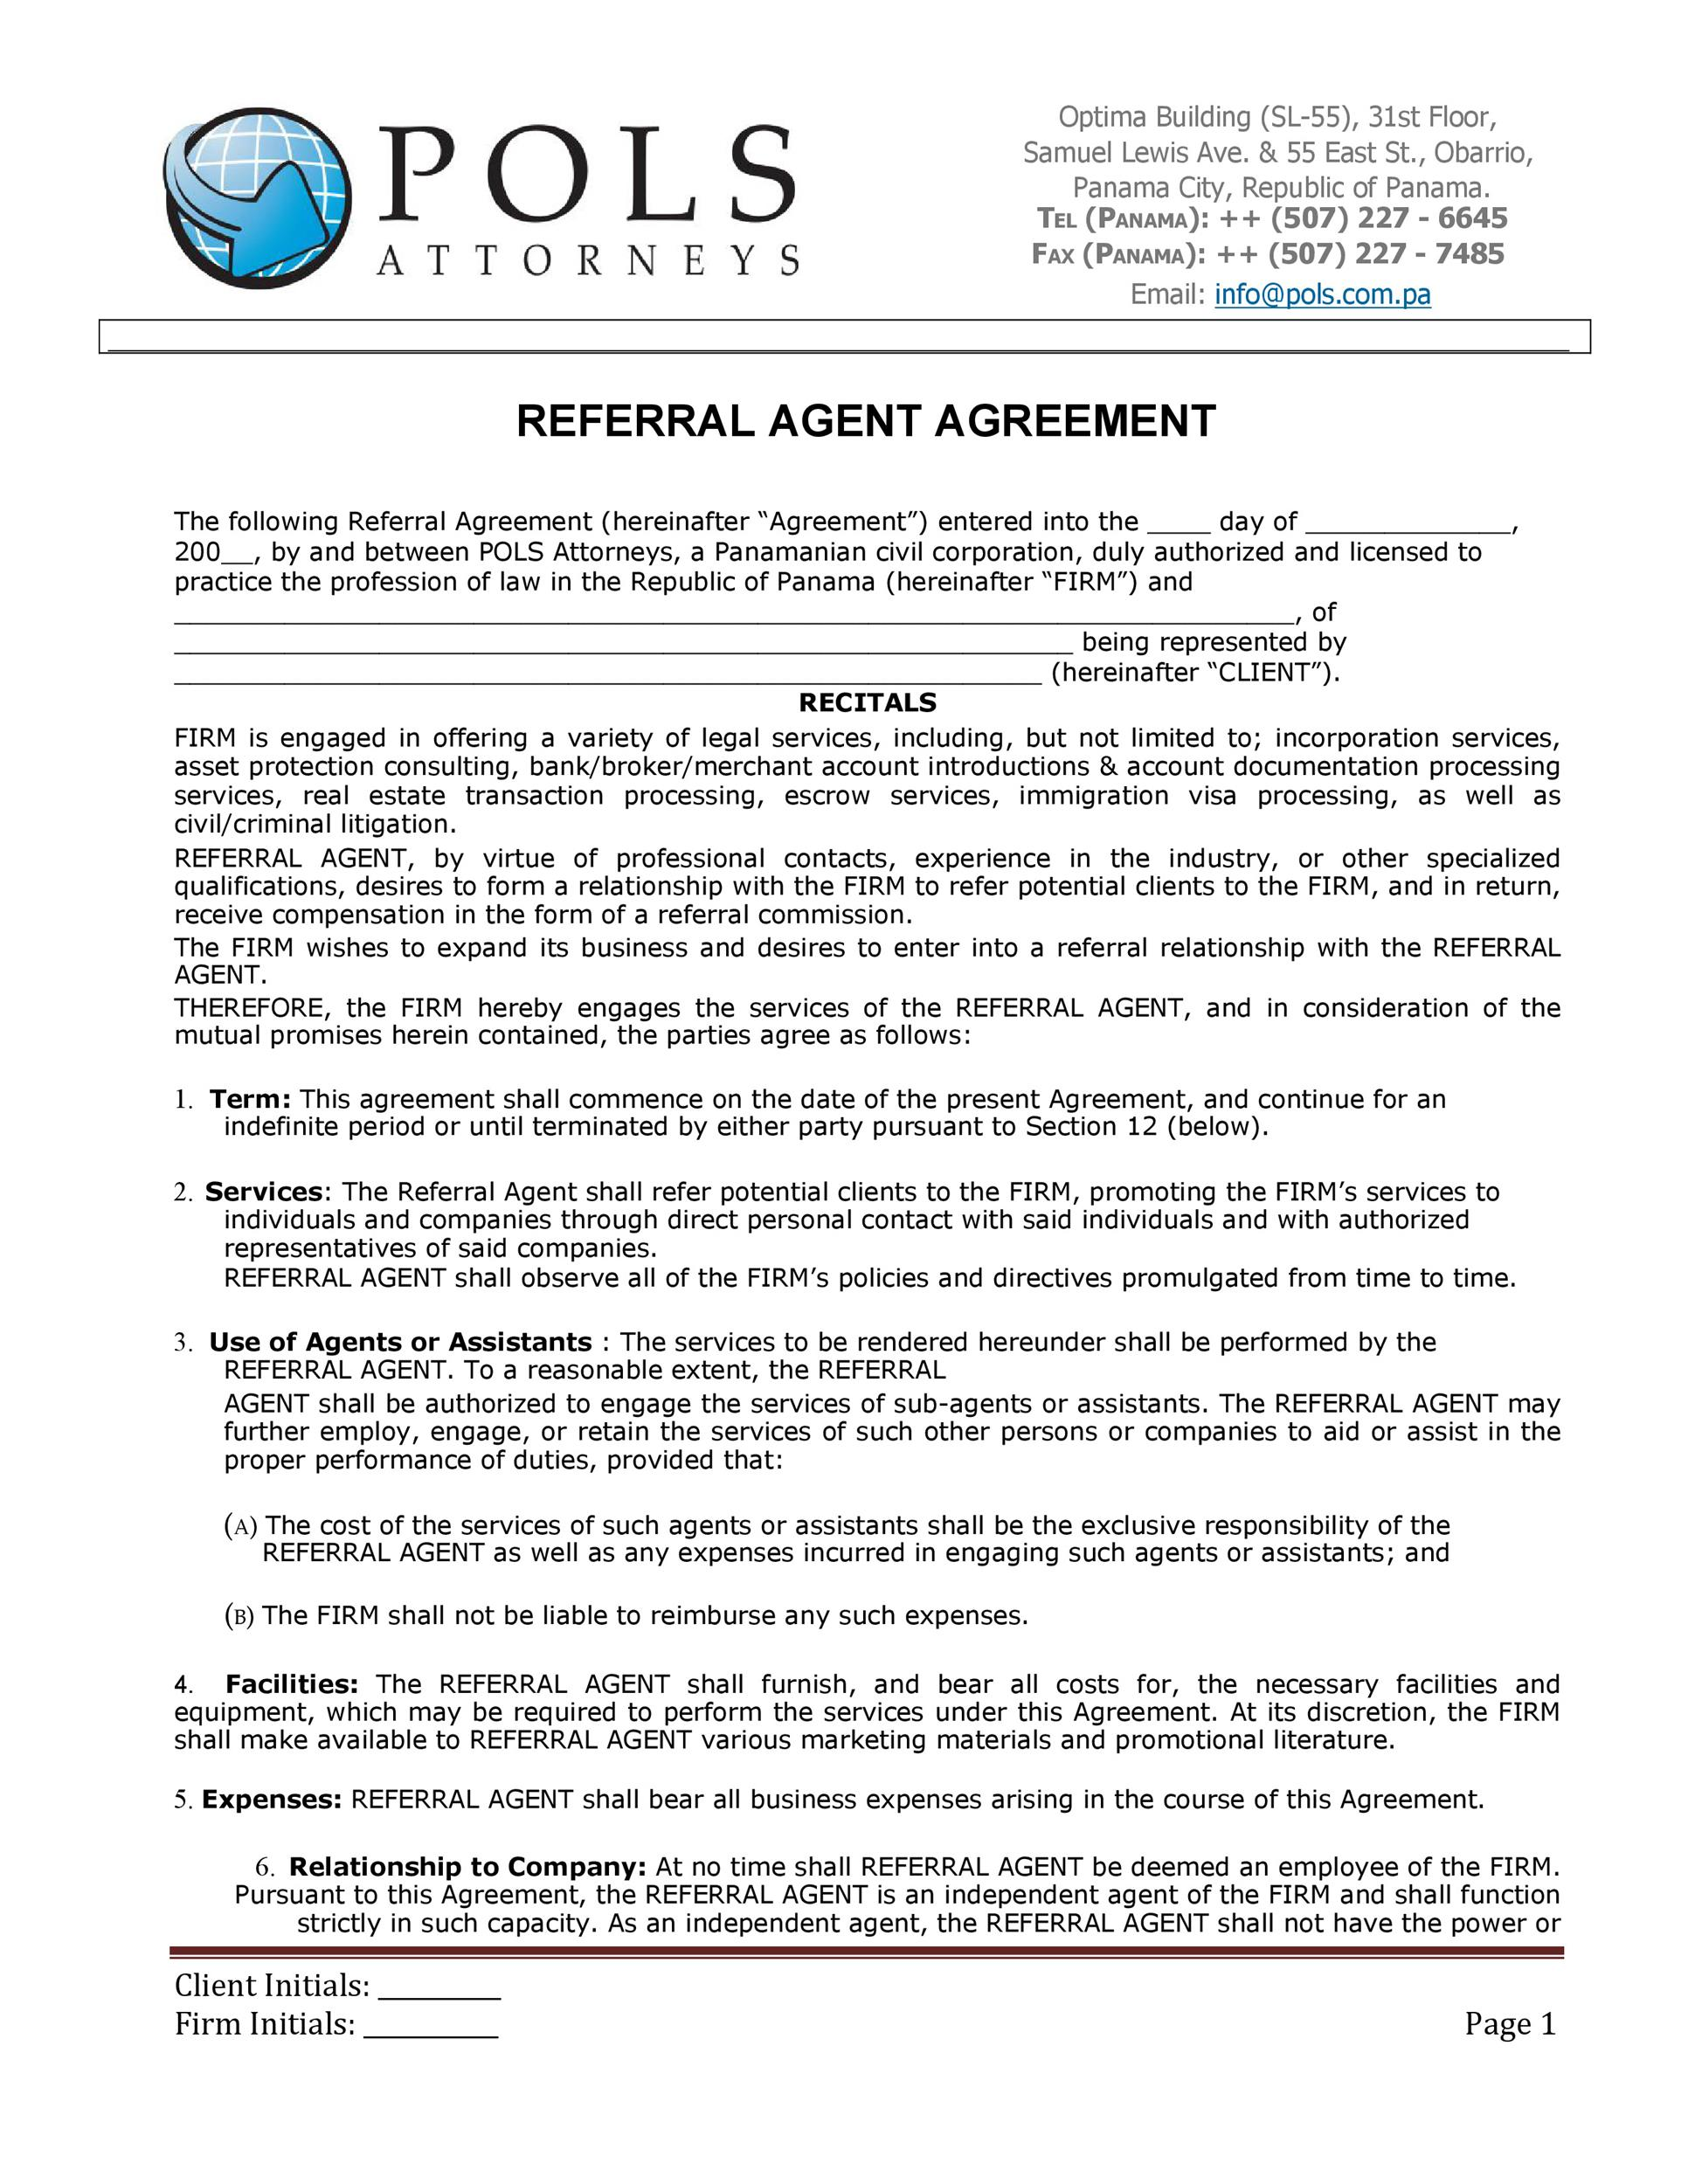 Free referral agreement template 29